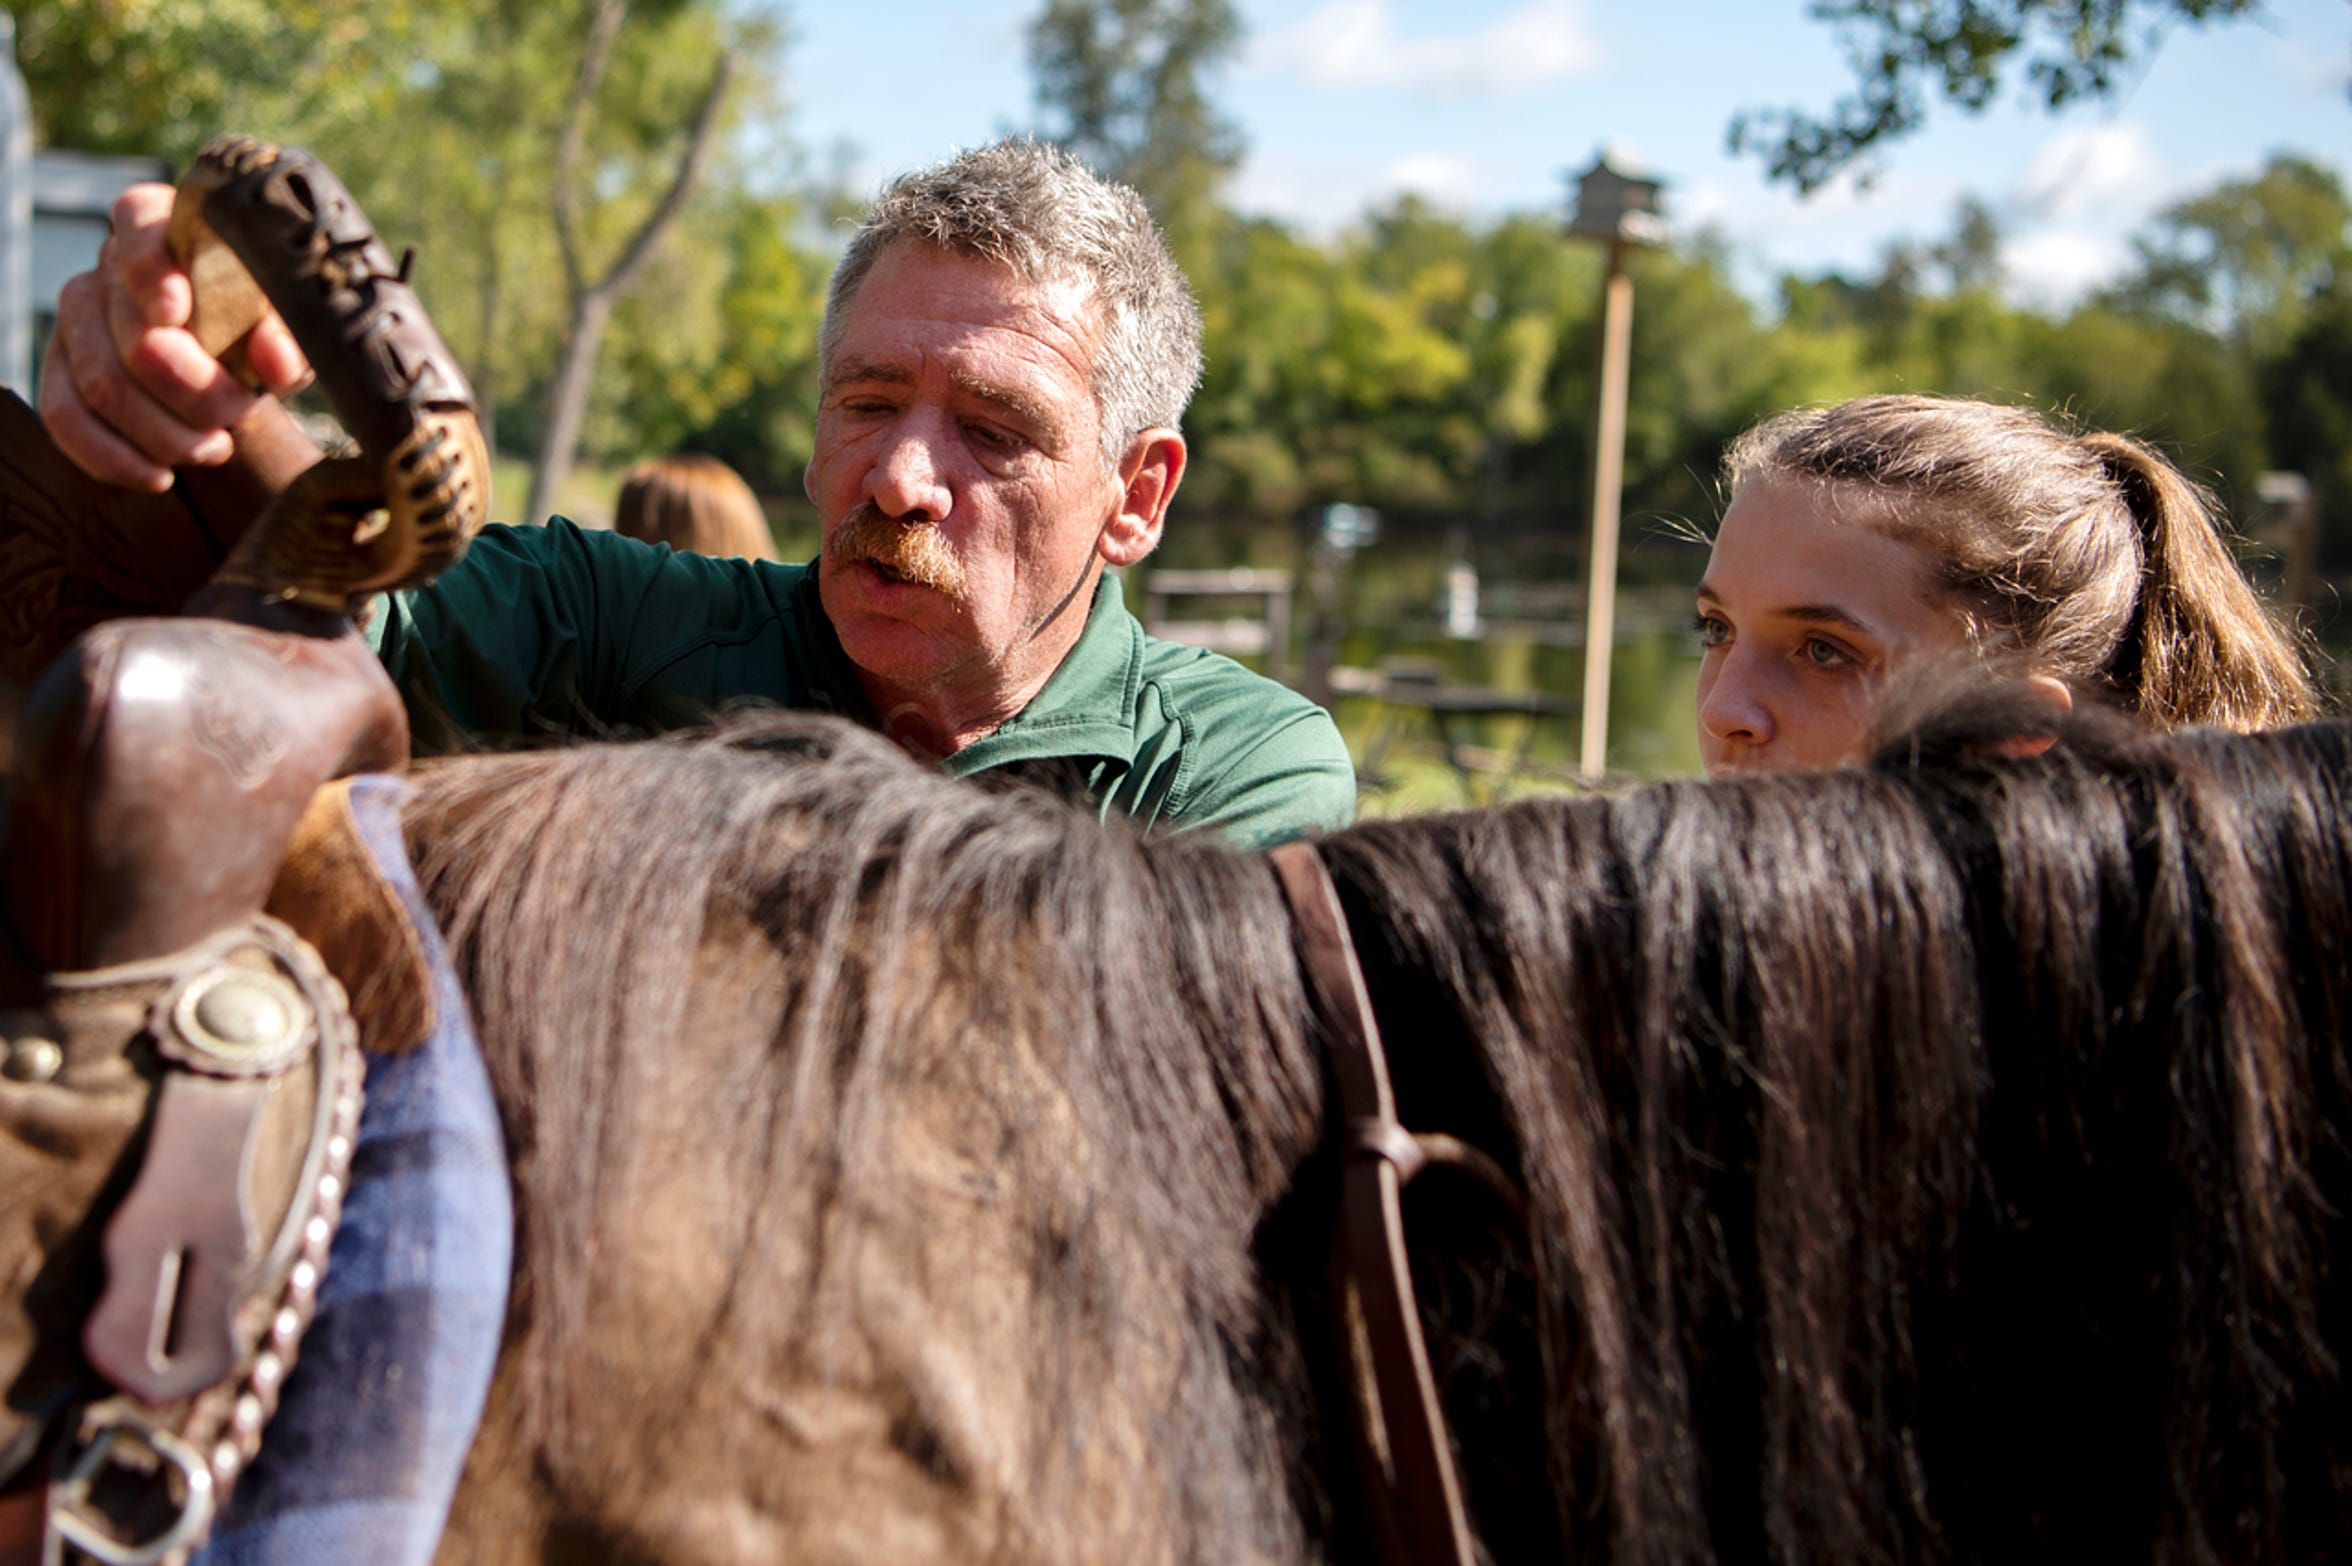 Jeff Friend assists Emmi Elkins, 14, on Saturday, Sept. 7, 2019 at Hidden Ponds Horse Rescue in Coldwater, Mich. At Hidden Ponds, rescued horses are used for therapy, giving horses and humans a second chance.